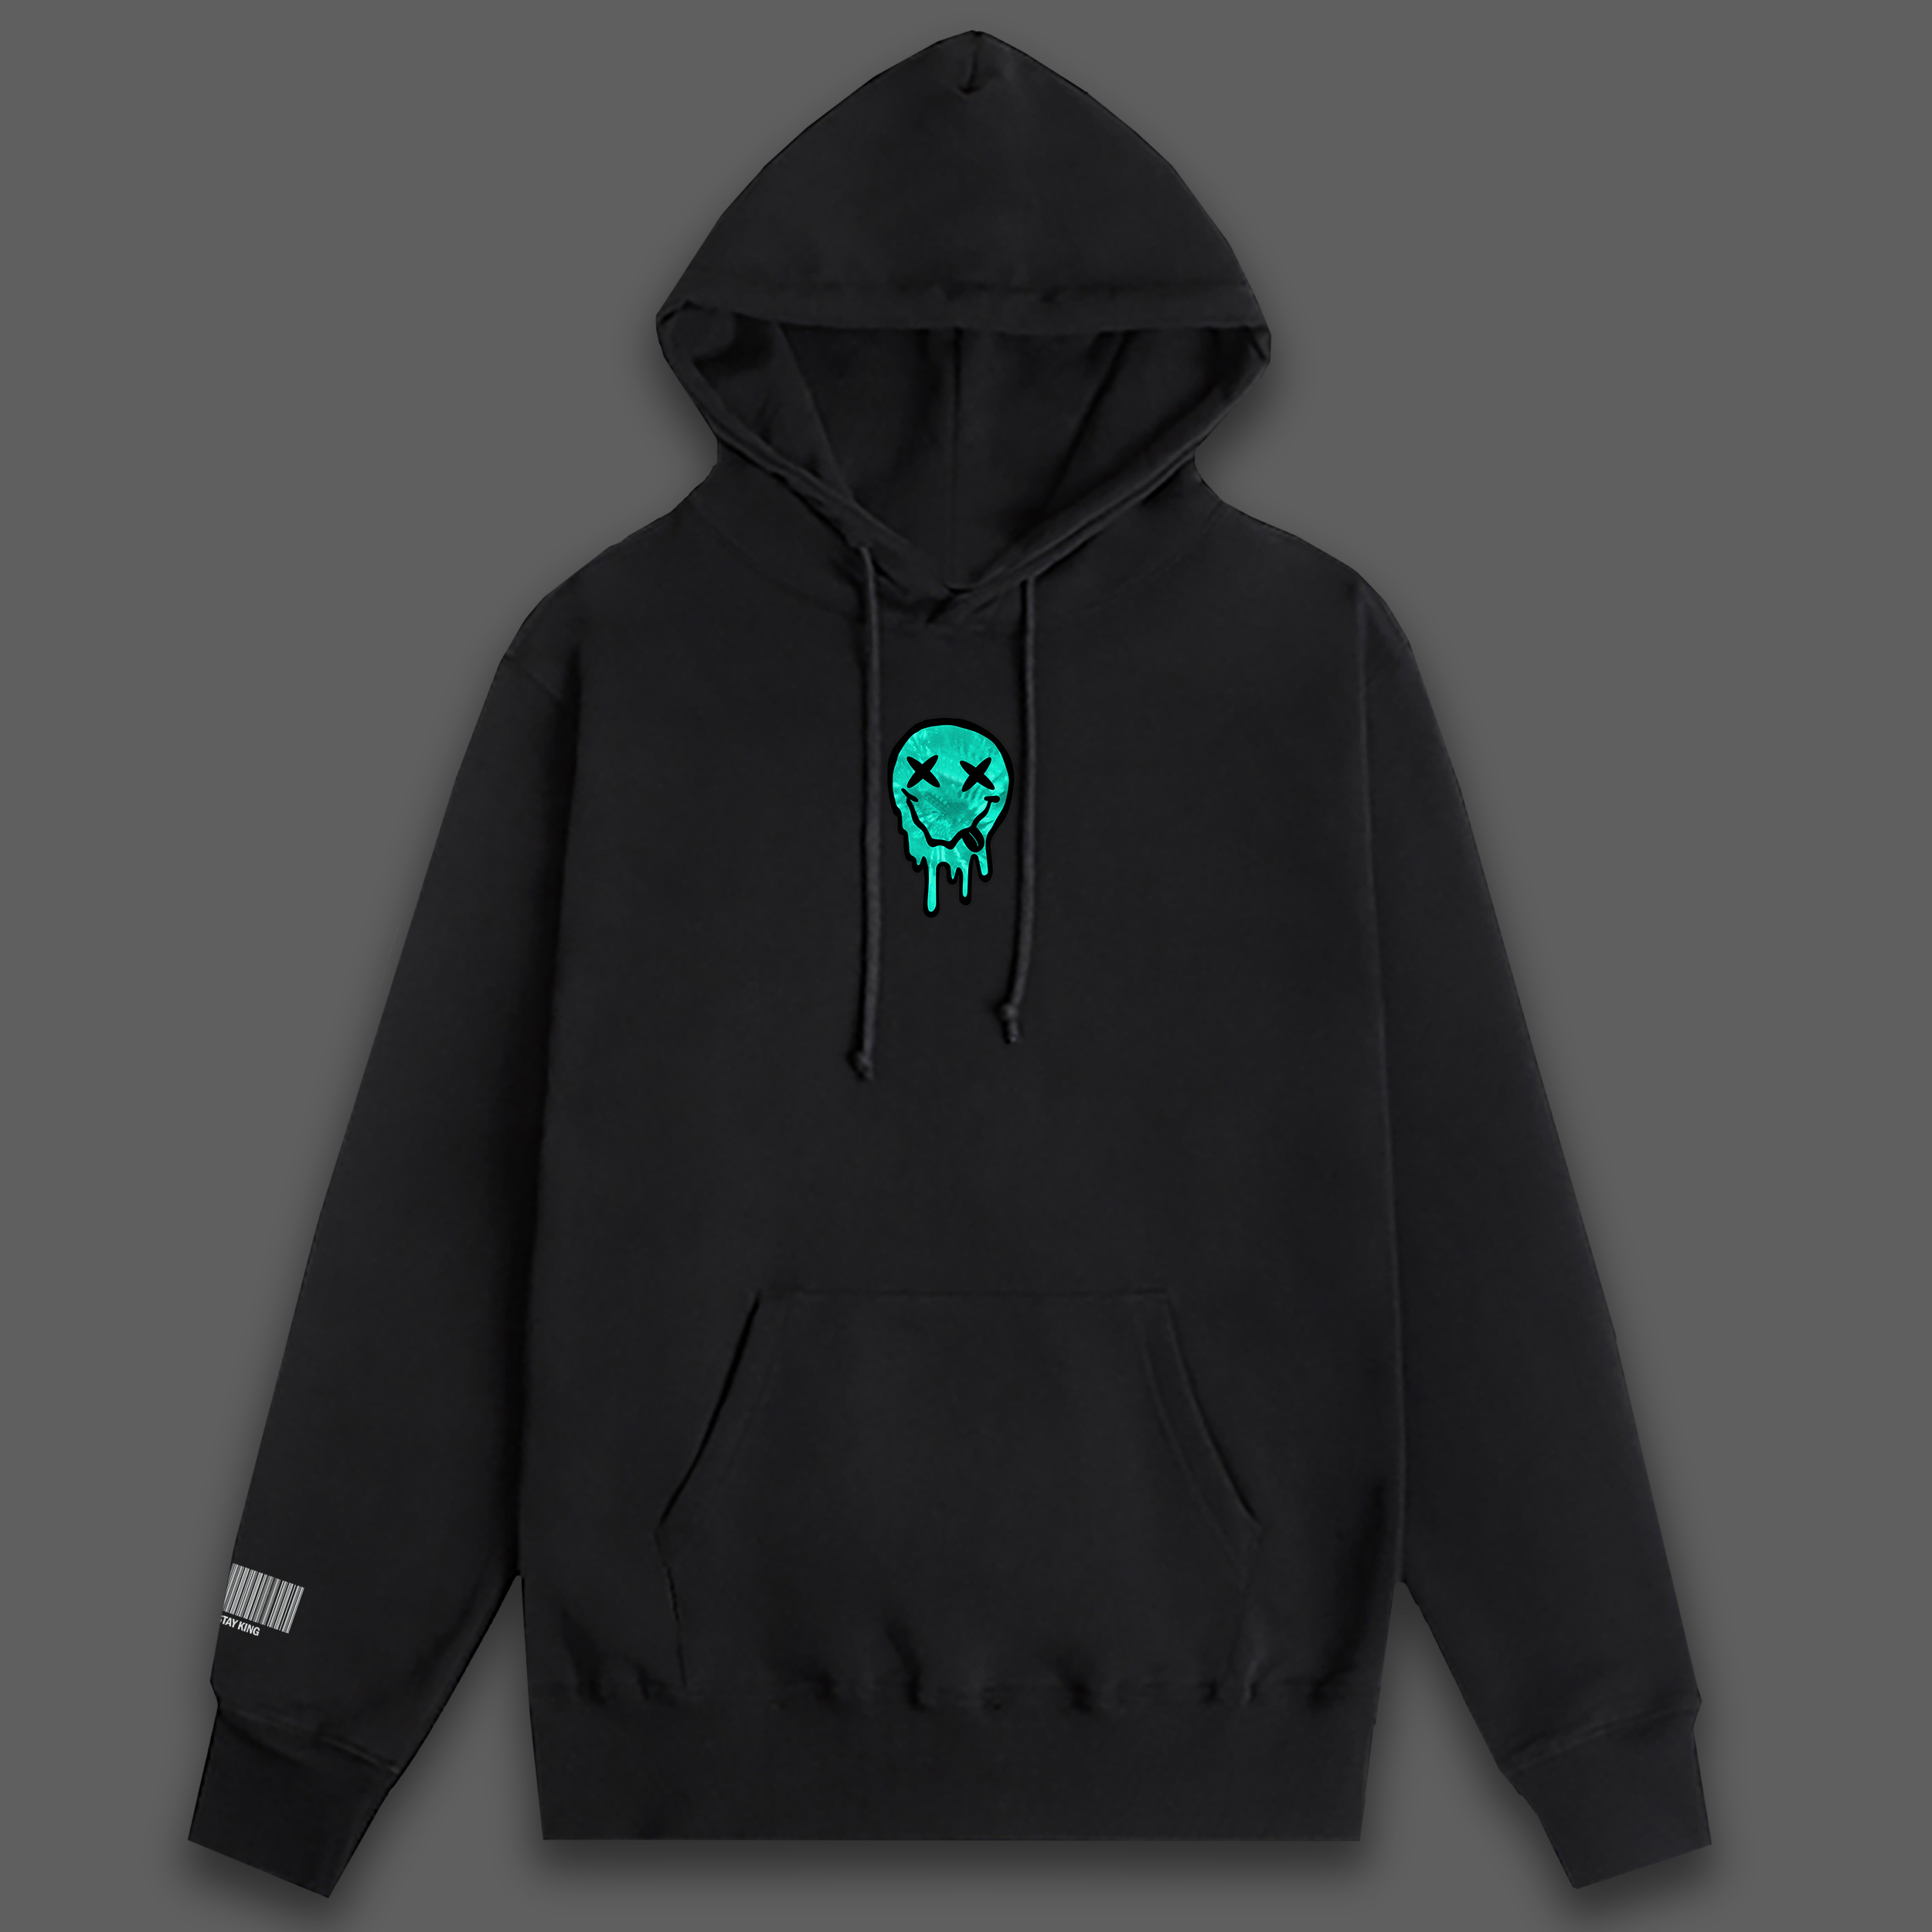 high mode black hoodie - Black